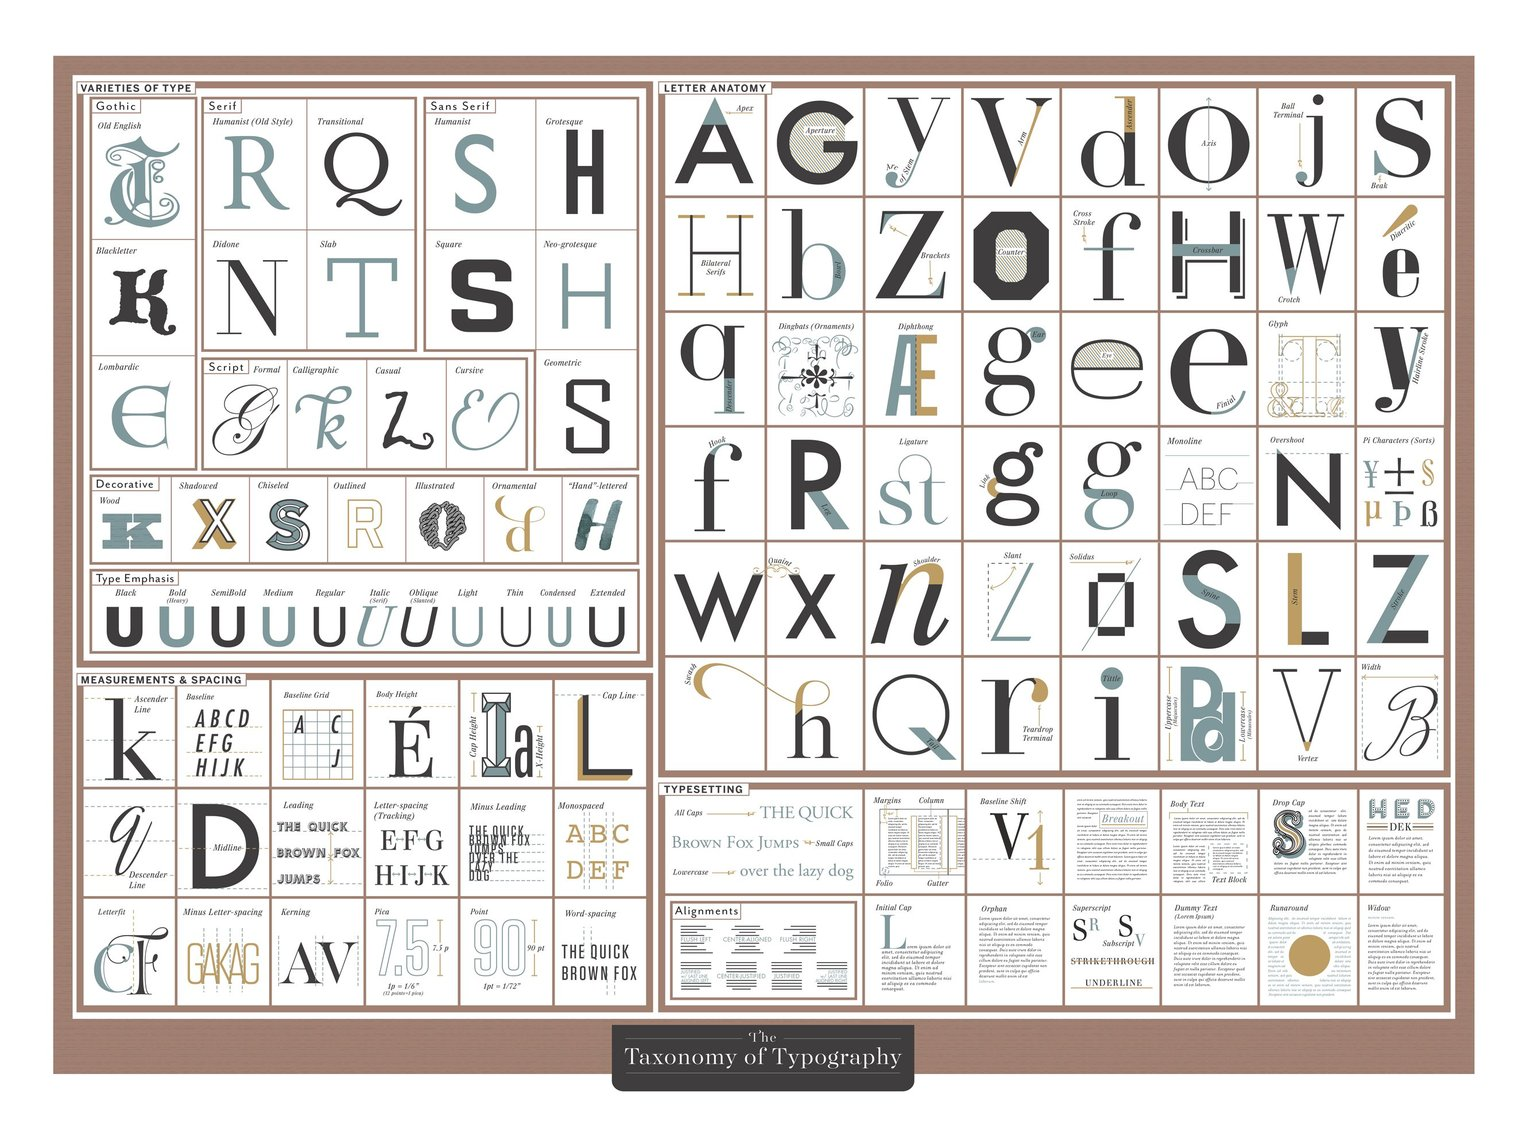 The Taxonomy of Typography